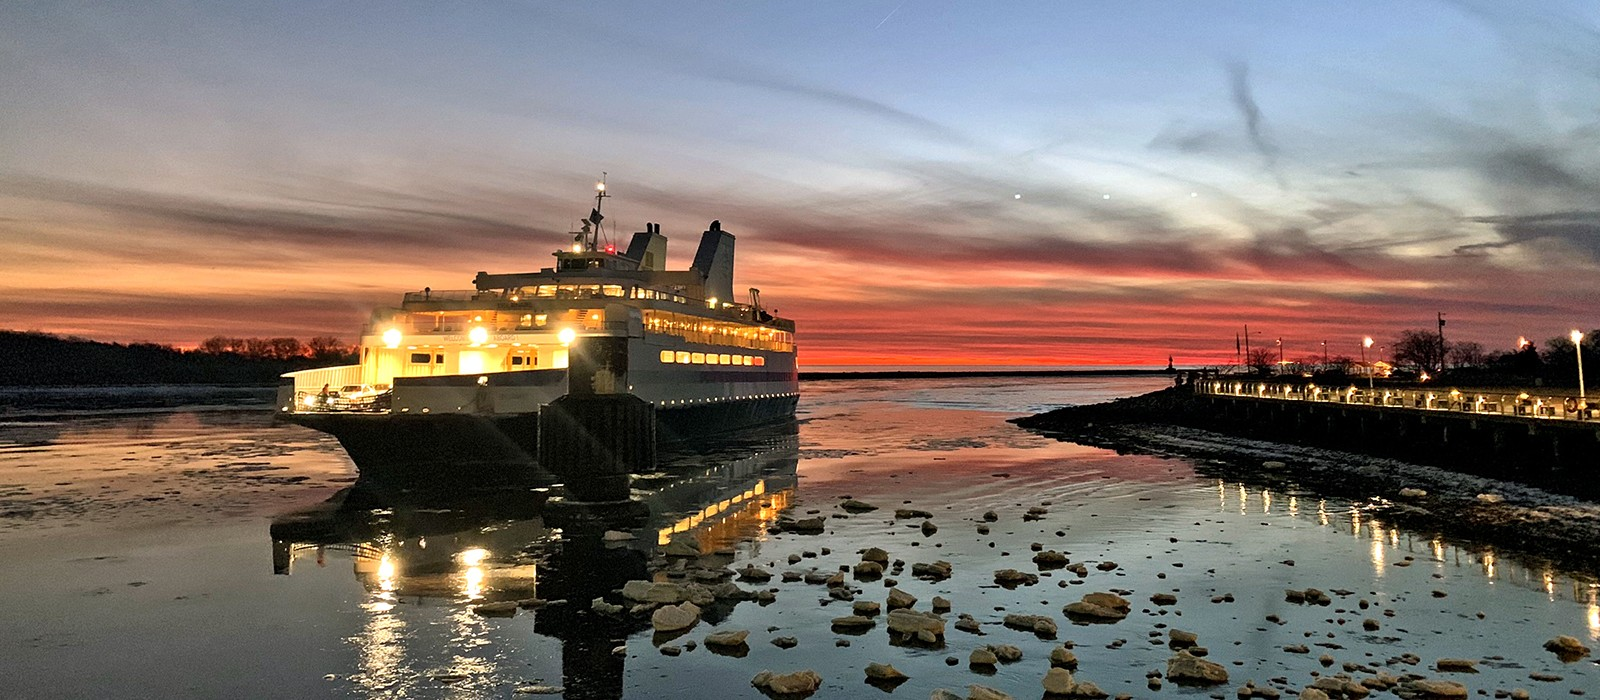 The Cape May-Lewes Ferry arrives on an icy bay with a beautiful red sky and sunset in the background